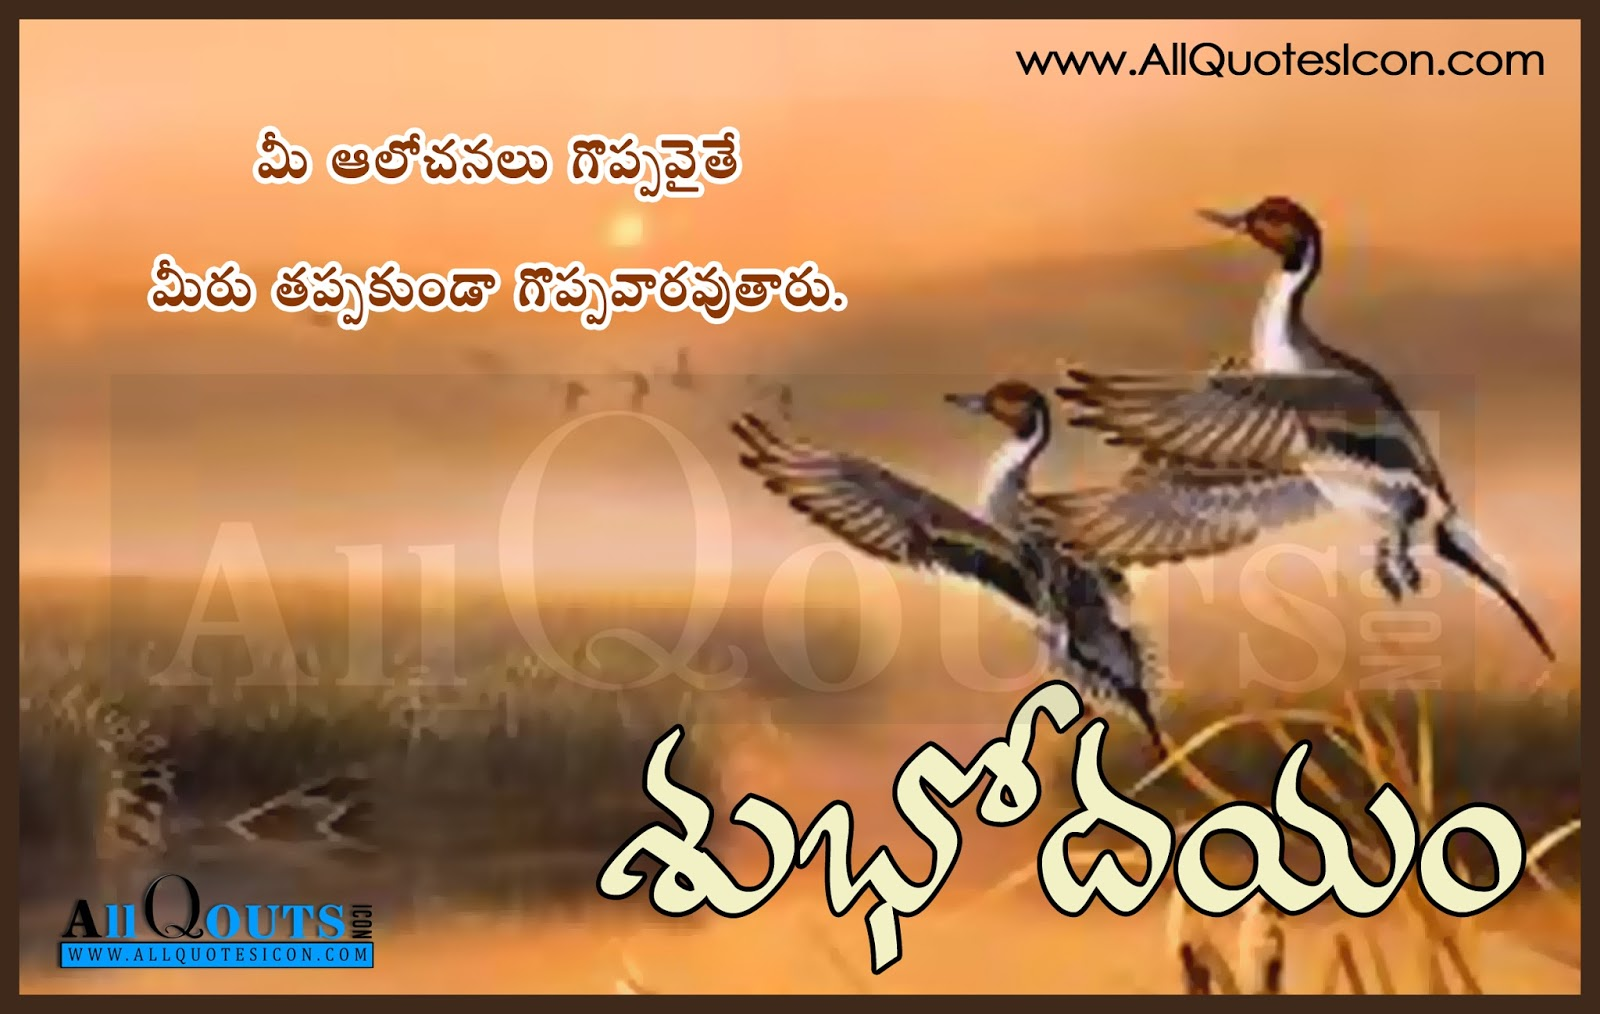 Good Morning Motivation Quotes In Telugu Wwwallquotesiconcom